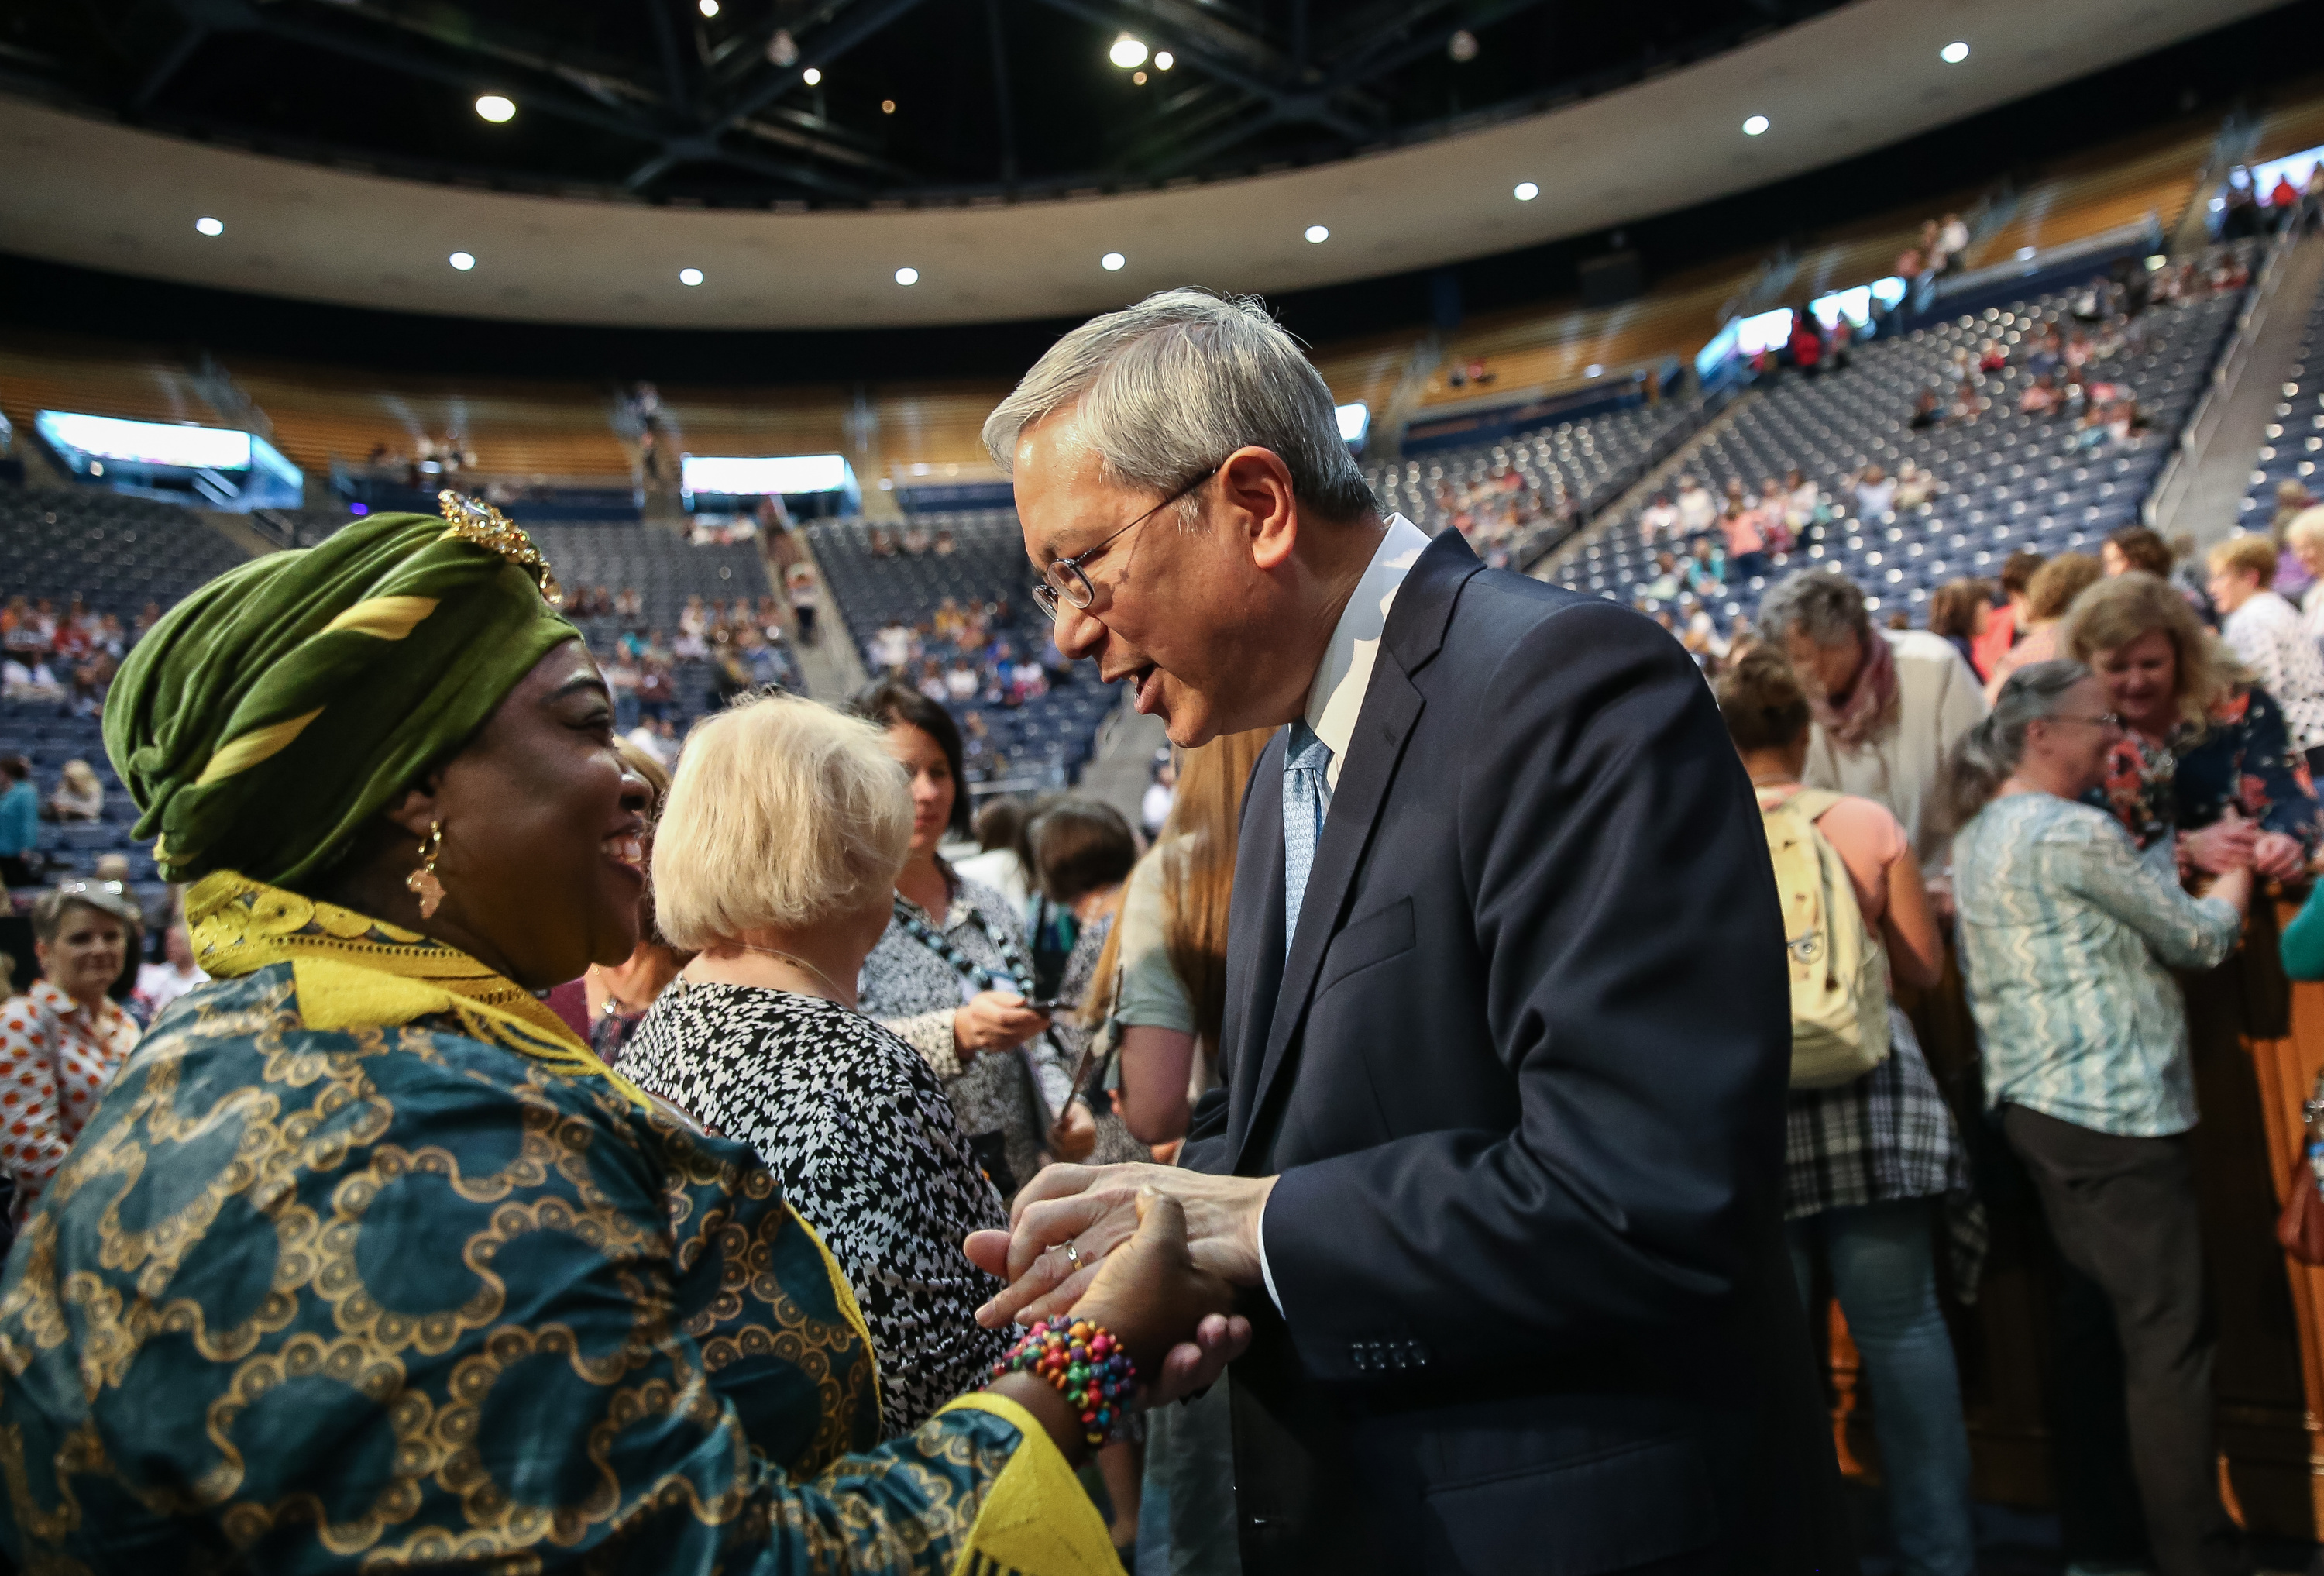 Elder Gerrit W. Gong, of the Quorum of the Twelve Apostles of the LDS Church, greets Mariama Olayemi, of Sierra Leone and now living in Salt Lake City, after Gong spoke at the BYU Women's Conference at the Marriott Center in Provo on Friday, May 4, 2018.